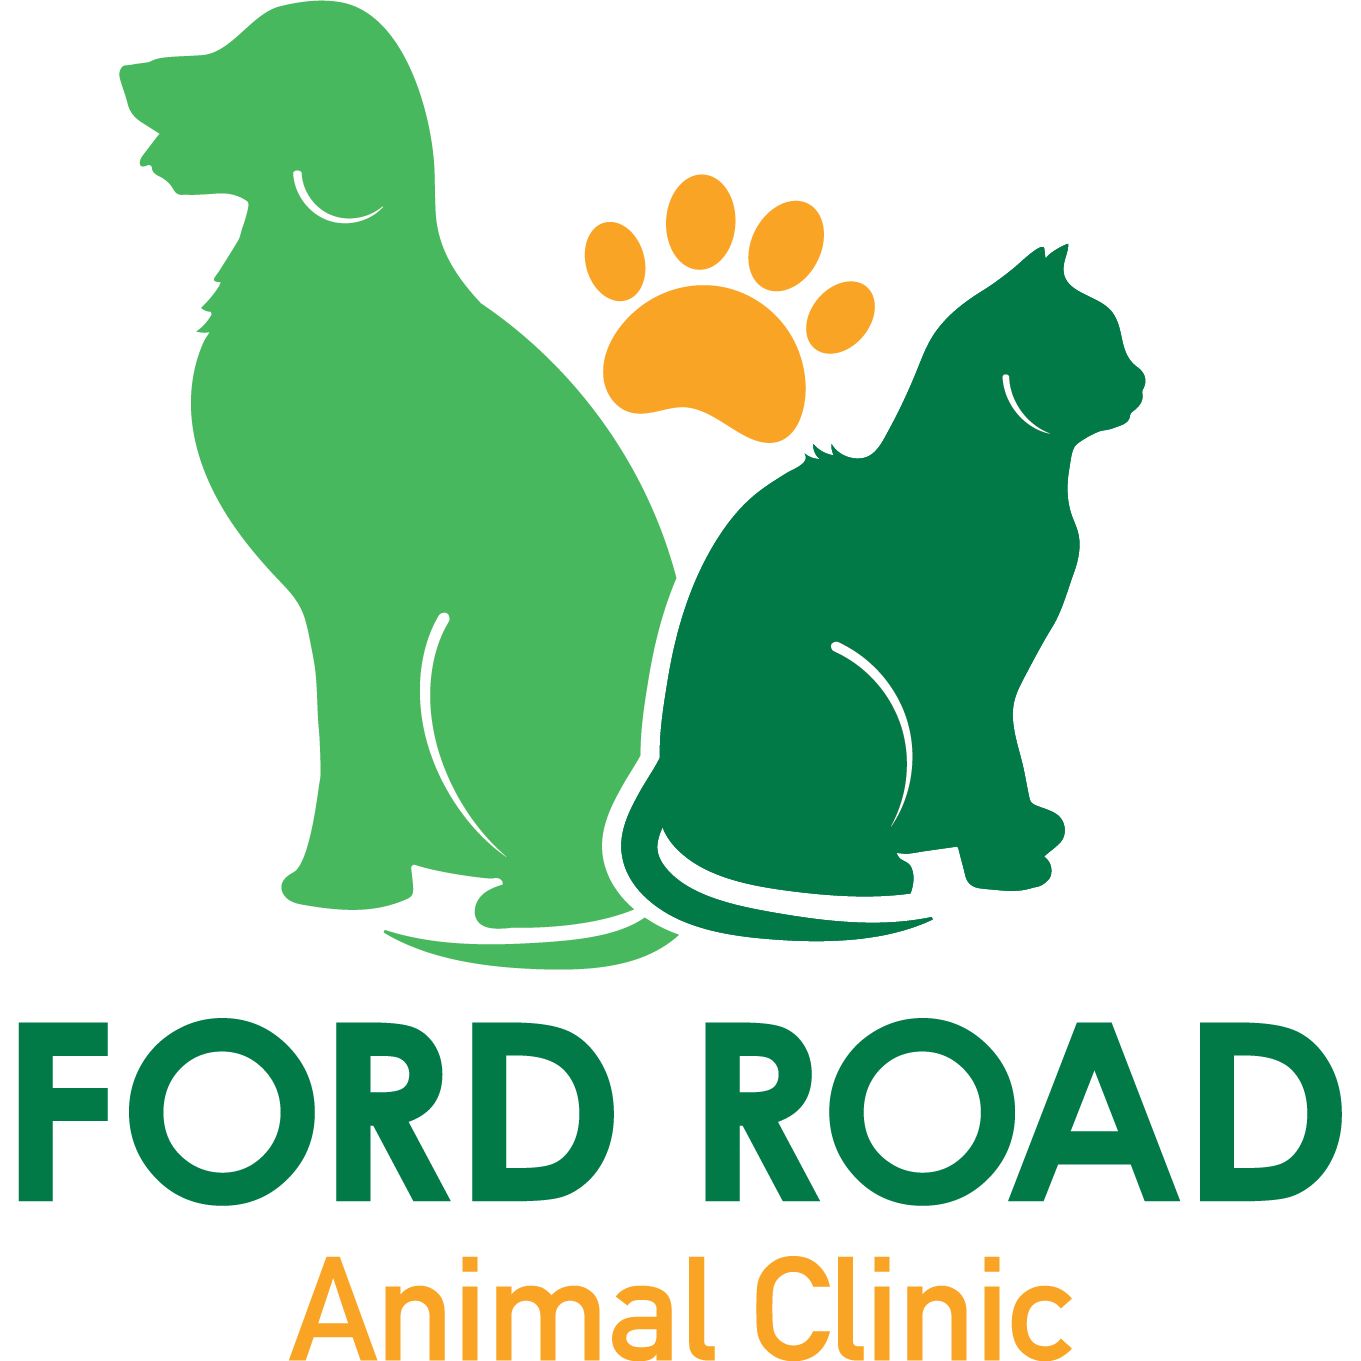 Ford Road Animal Clinic